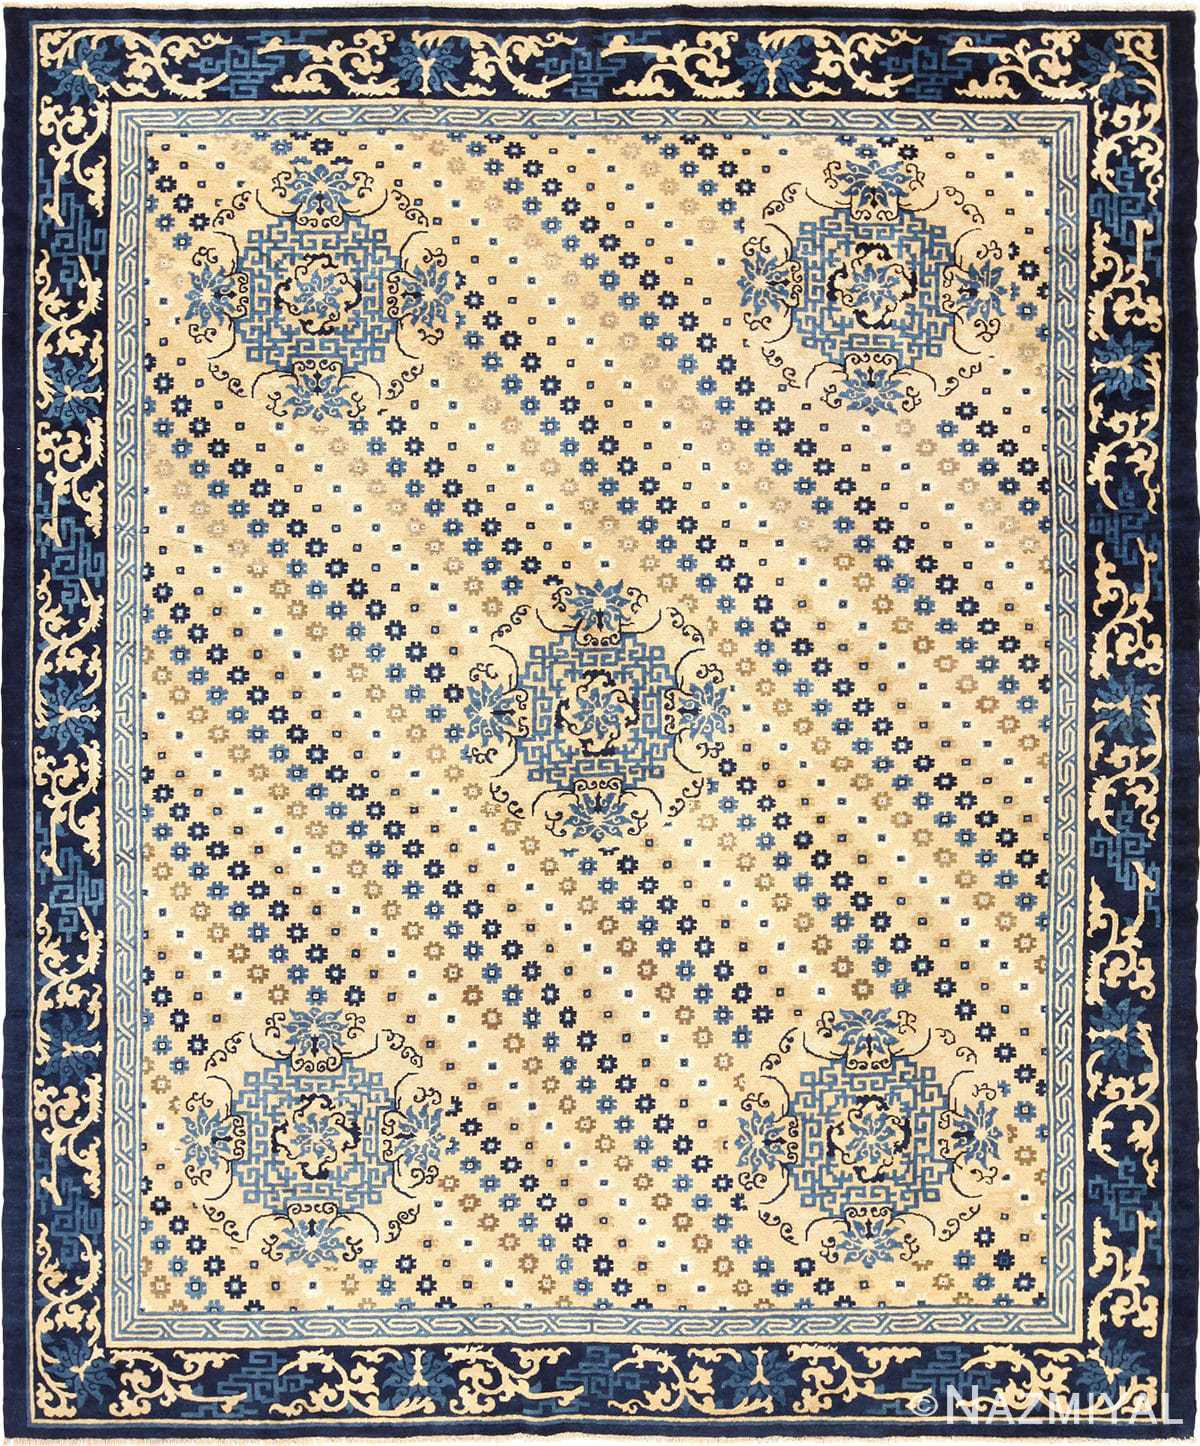 Decorative Room Size Antique Oriental Chinese Rug 49542 by Nazmiyal